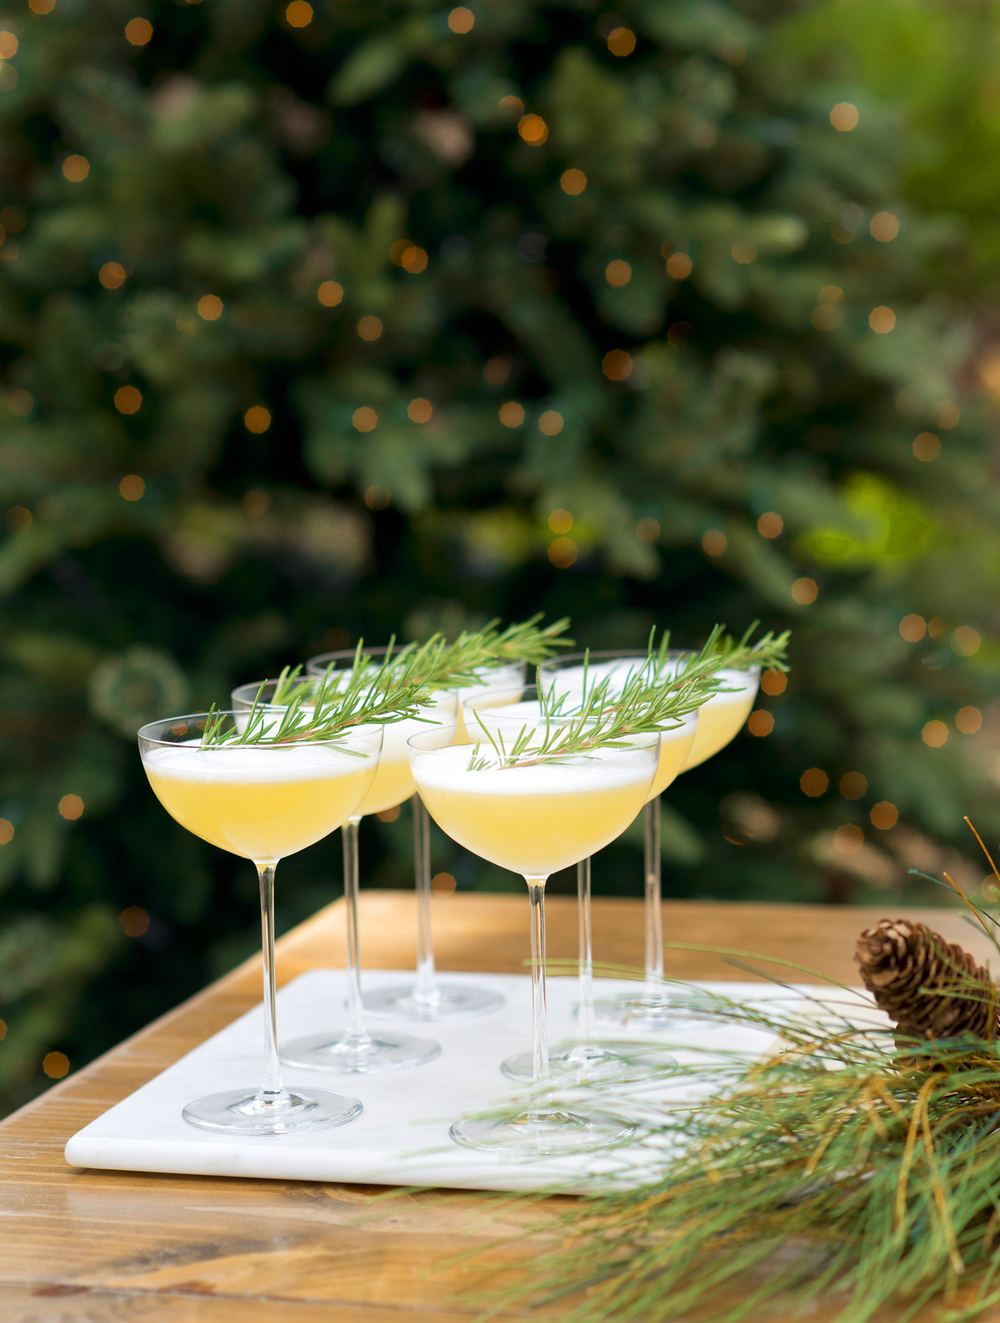 Christmas Lady Cocktail Recipe served in Crate & Barrel's Coupe Glass